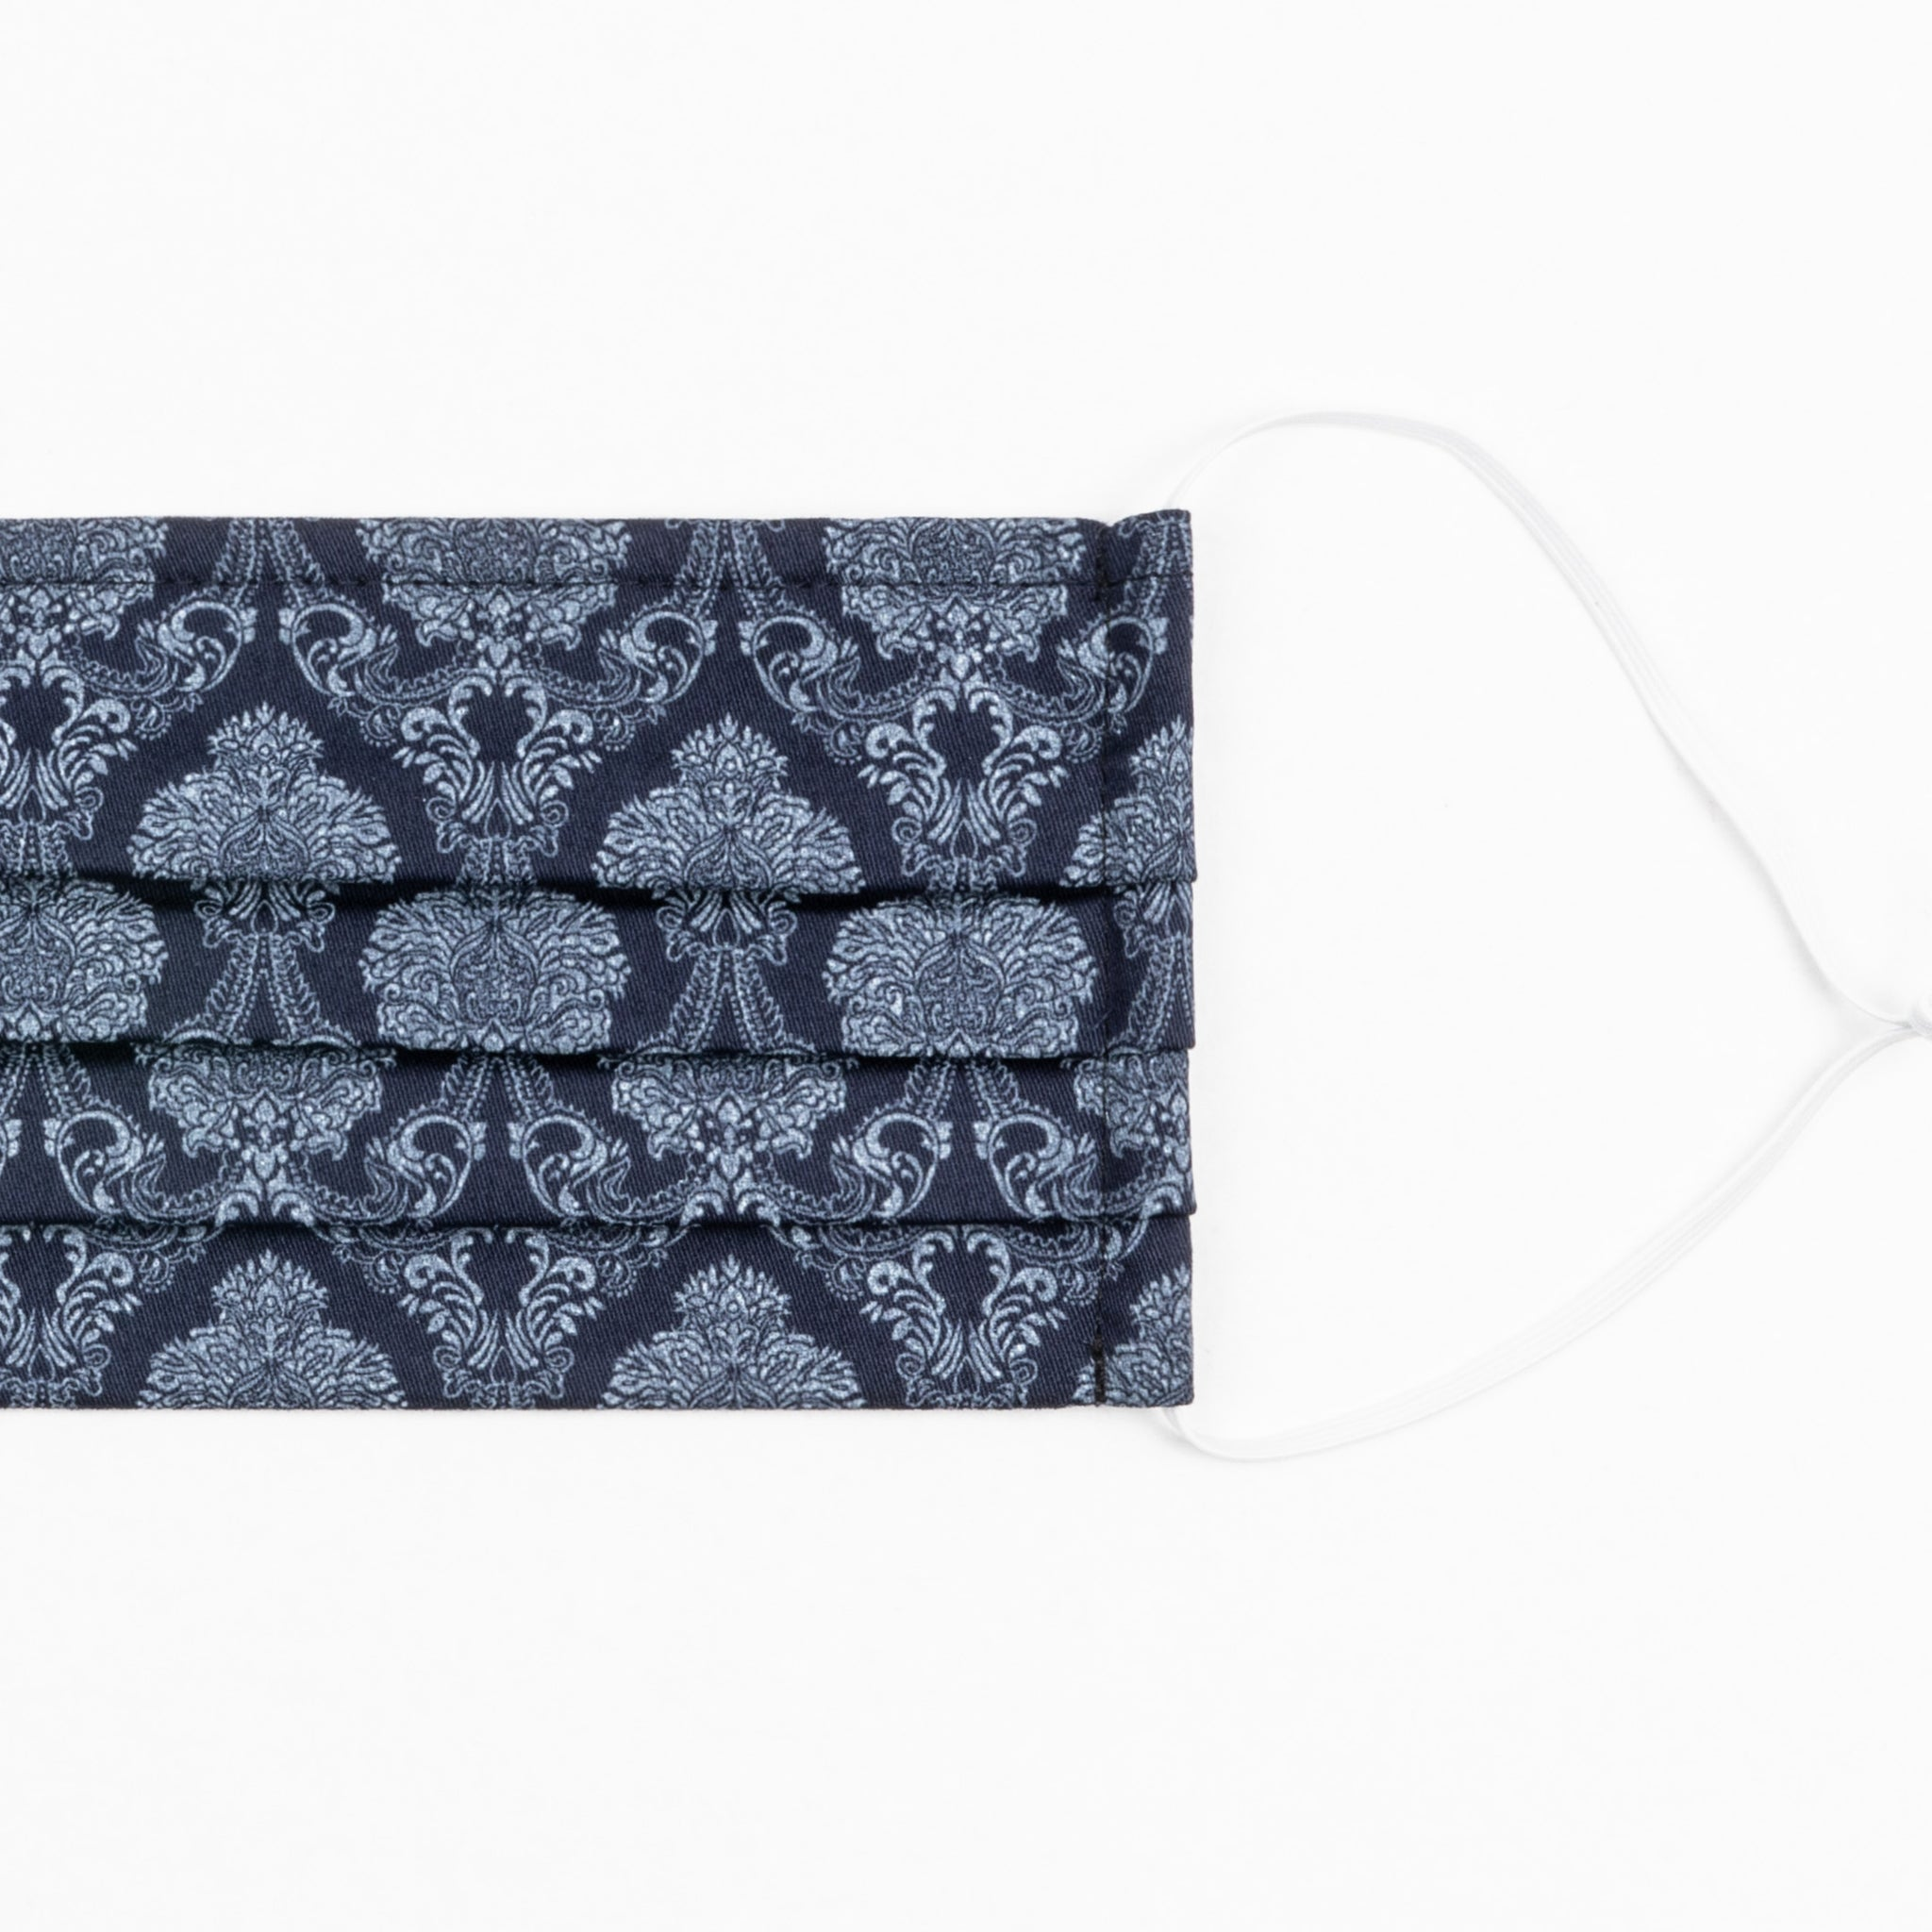 Orientexpress blau - SMALL